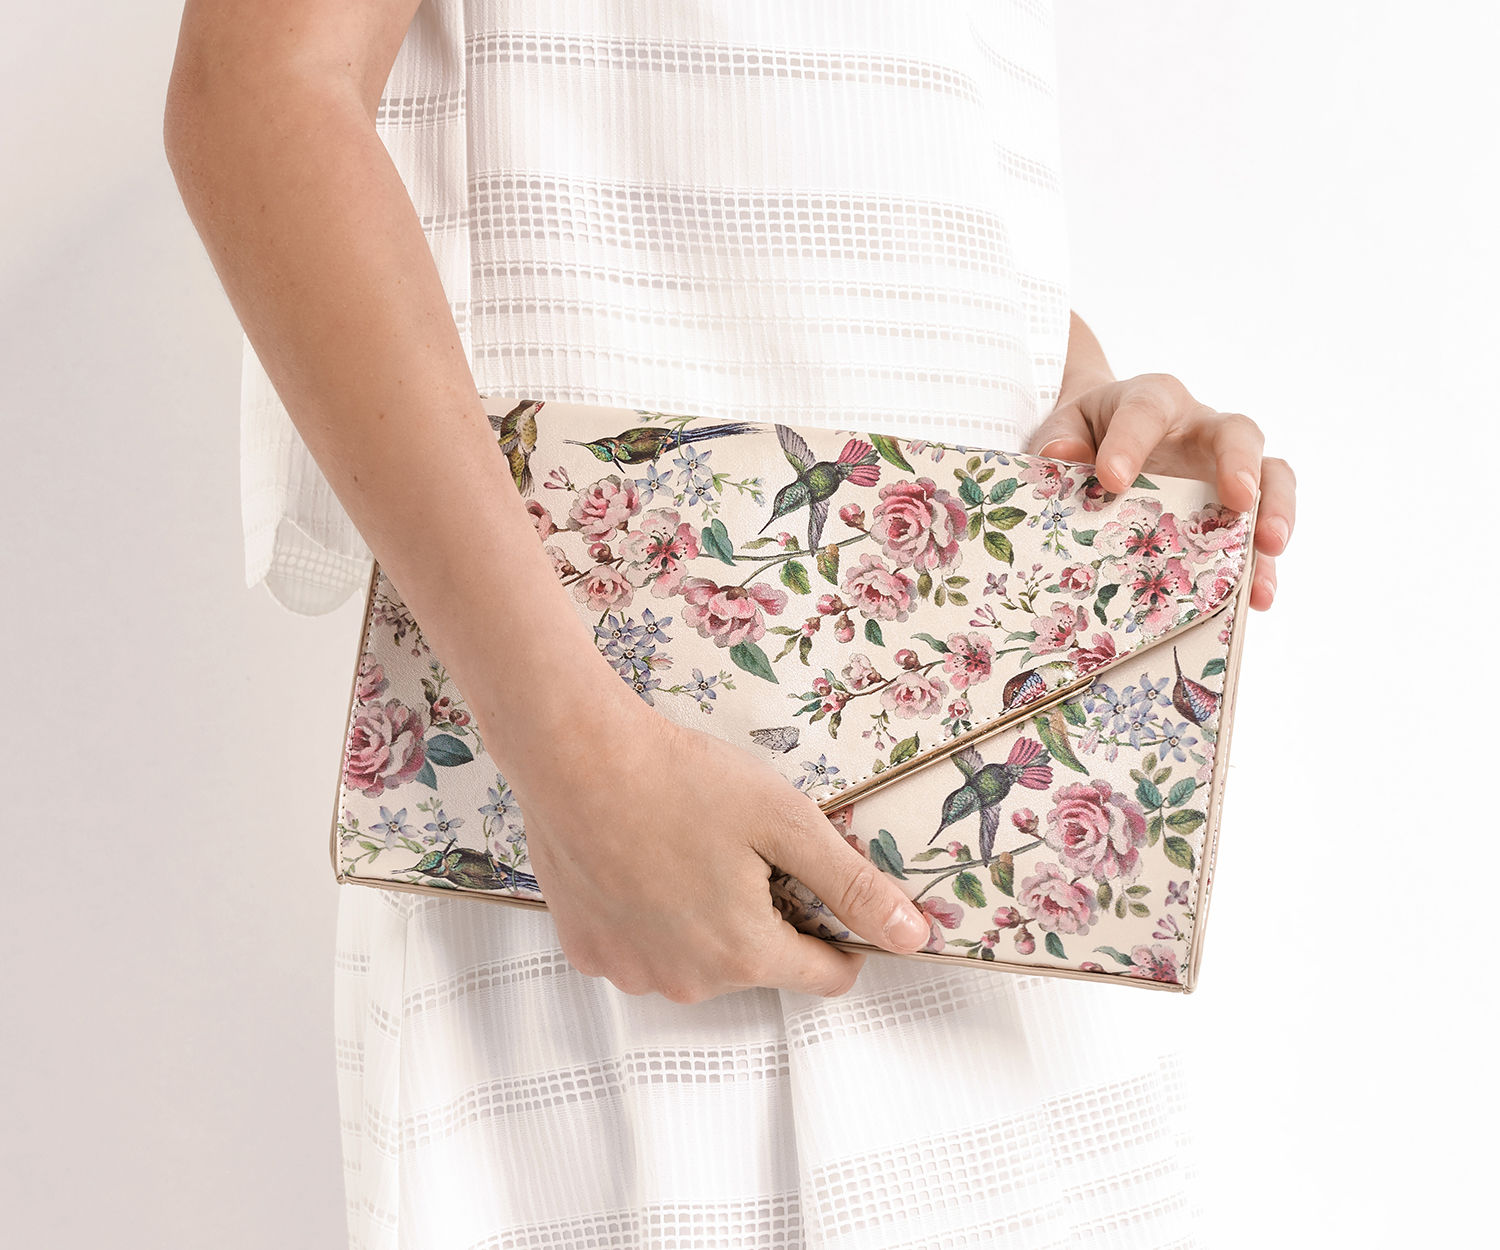 d442442e1910 6 quirky bridal clutch bags - Love Our Wedding